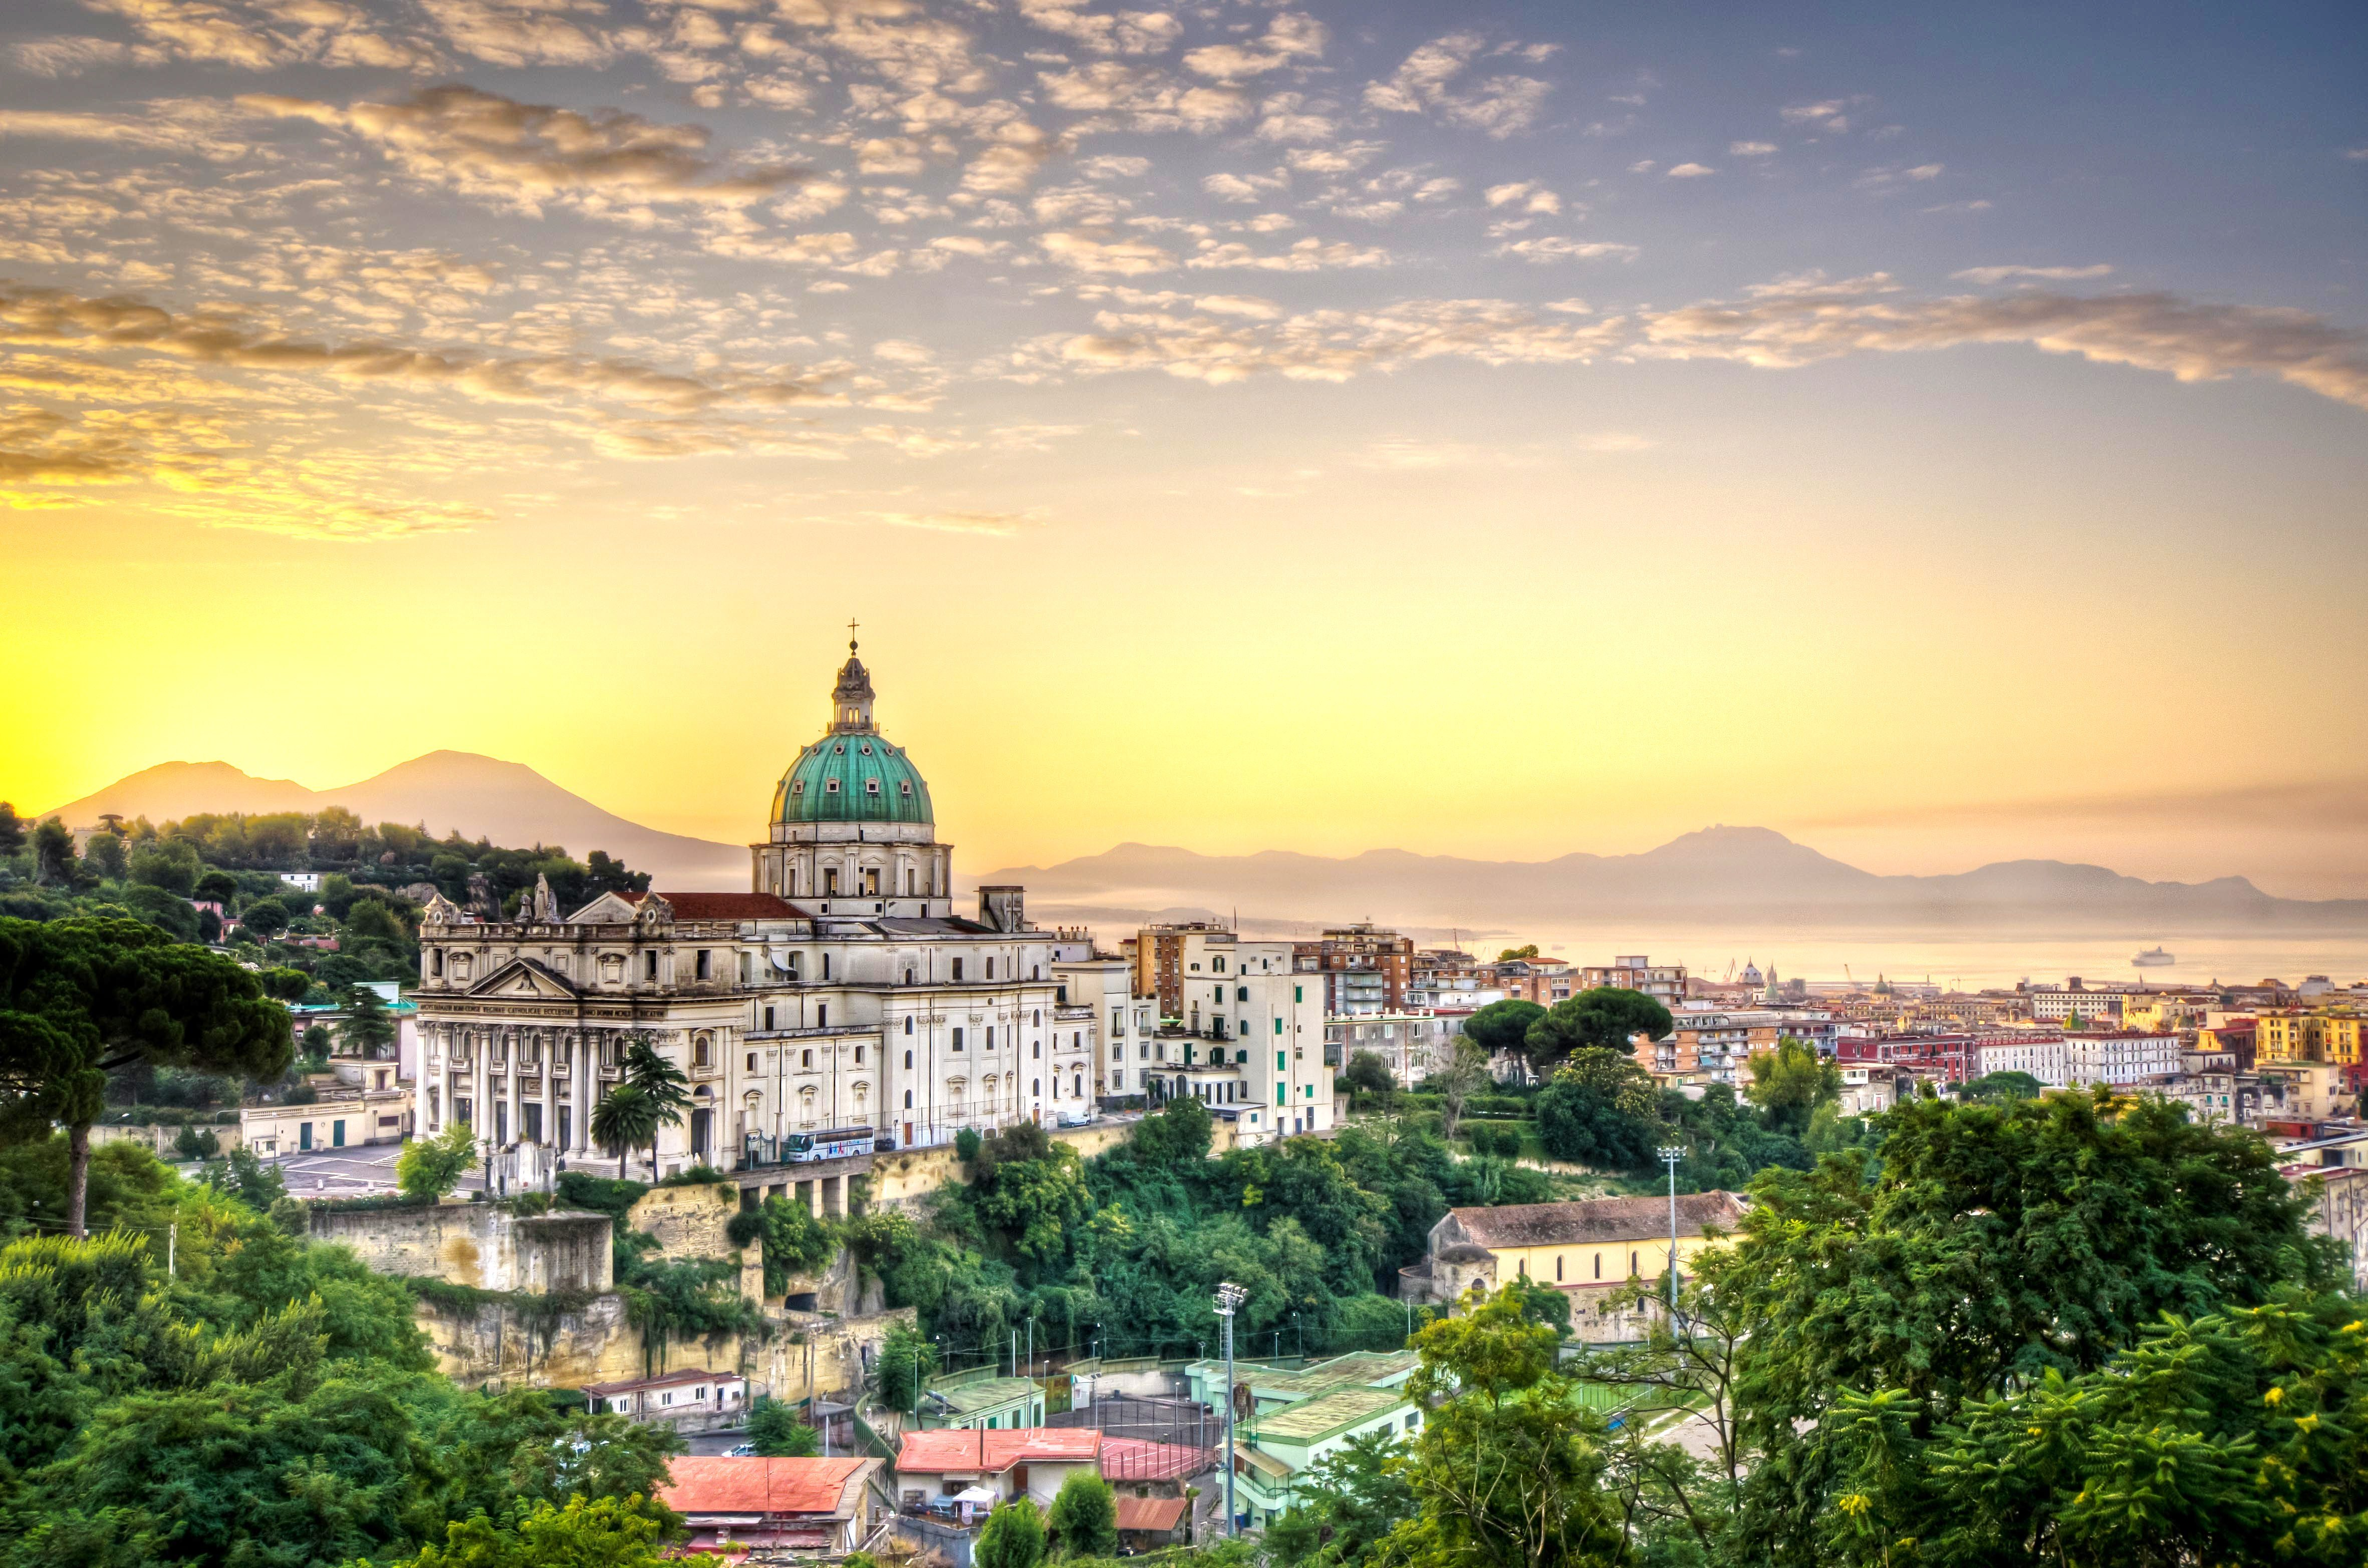 Naples Italy  city pictures gallery : NAPLES ITALY city cities building buildings italian Napoli wallpaper ...